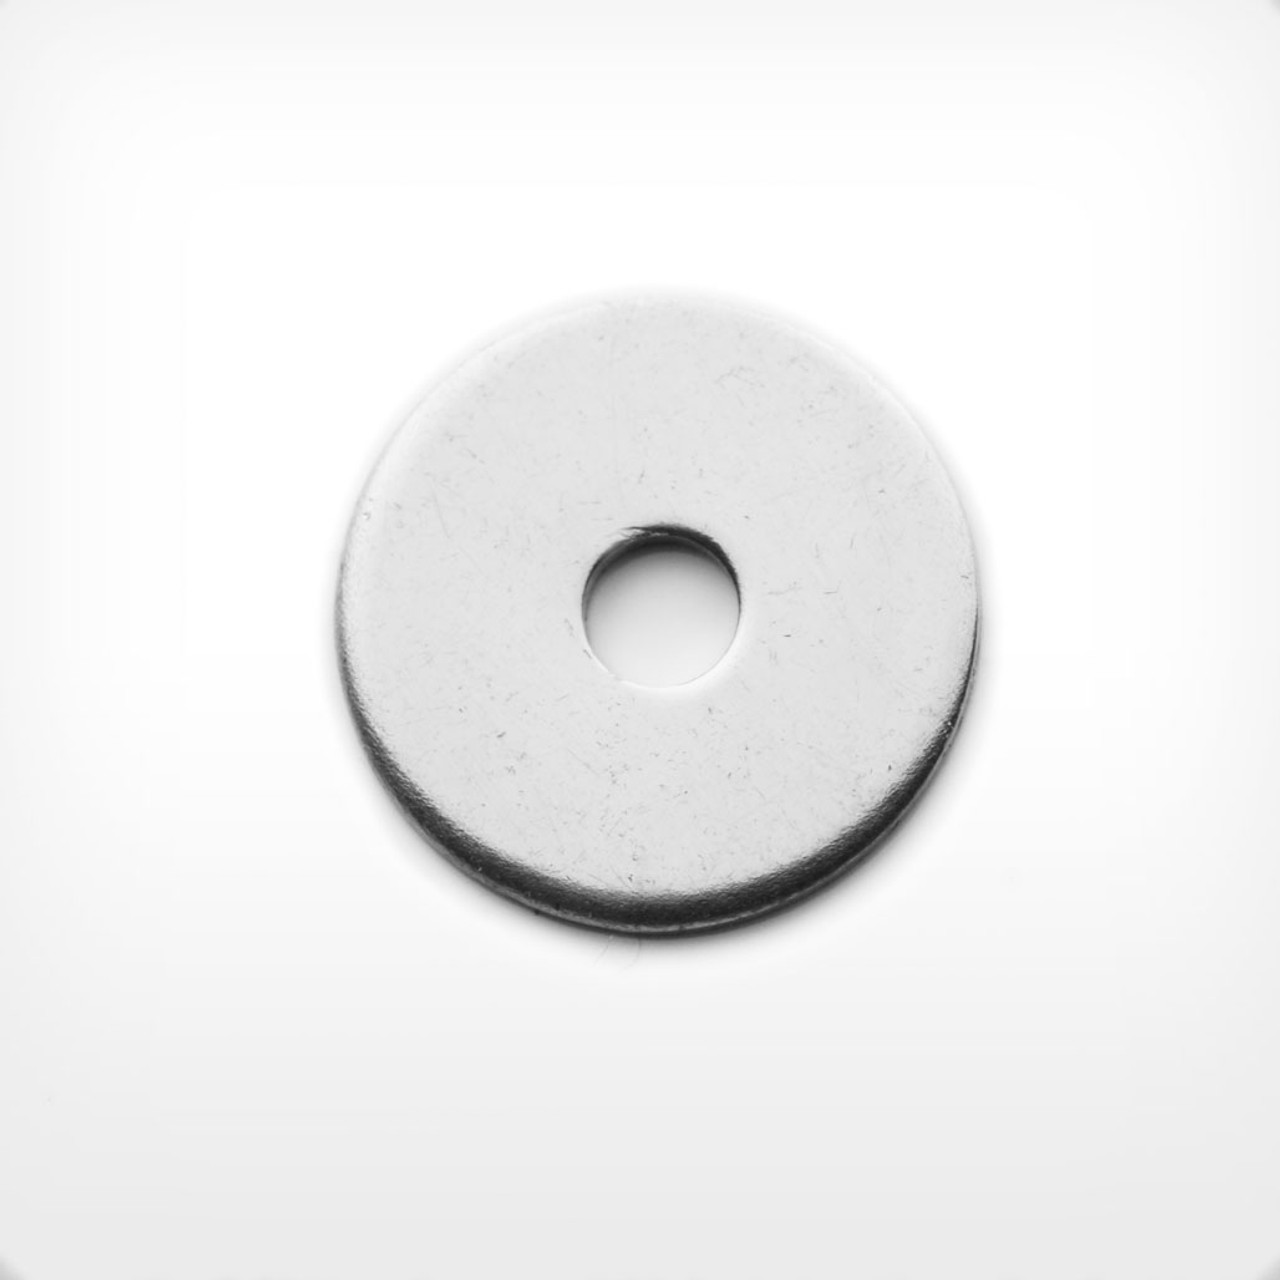 Aluminium Washer 13mm, with 3.0mm central piercing - Pack of 10 (851-AL)